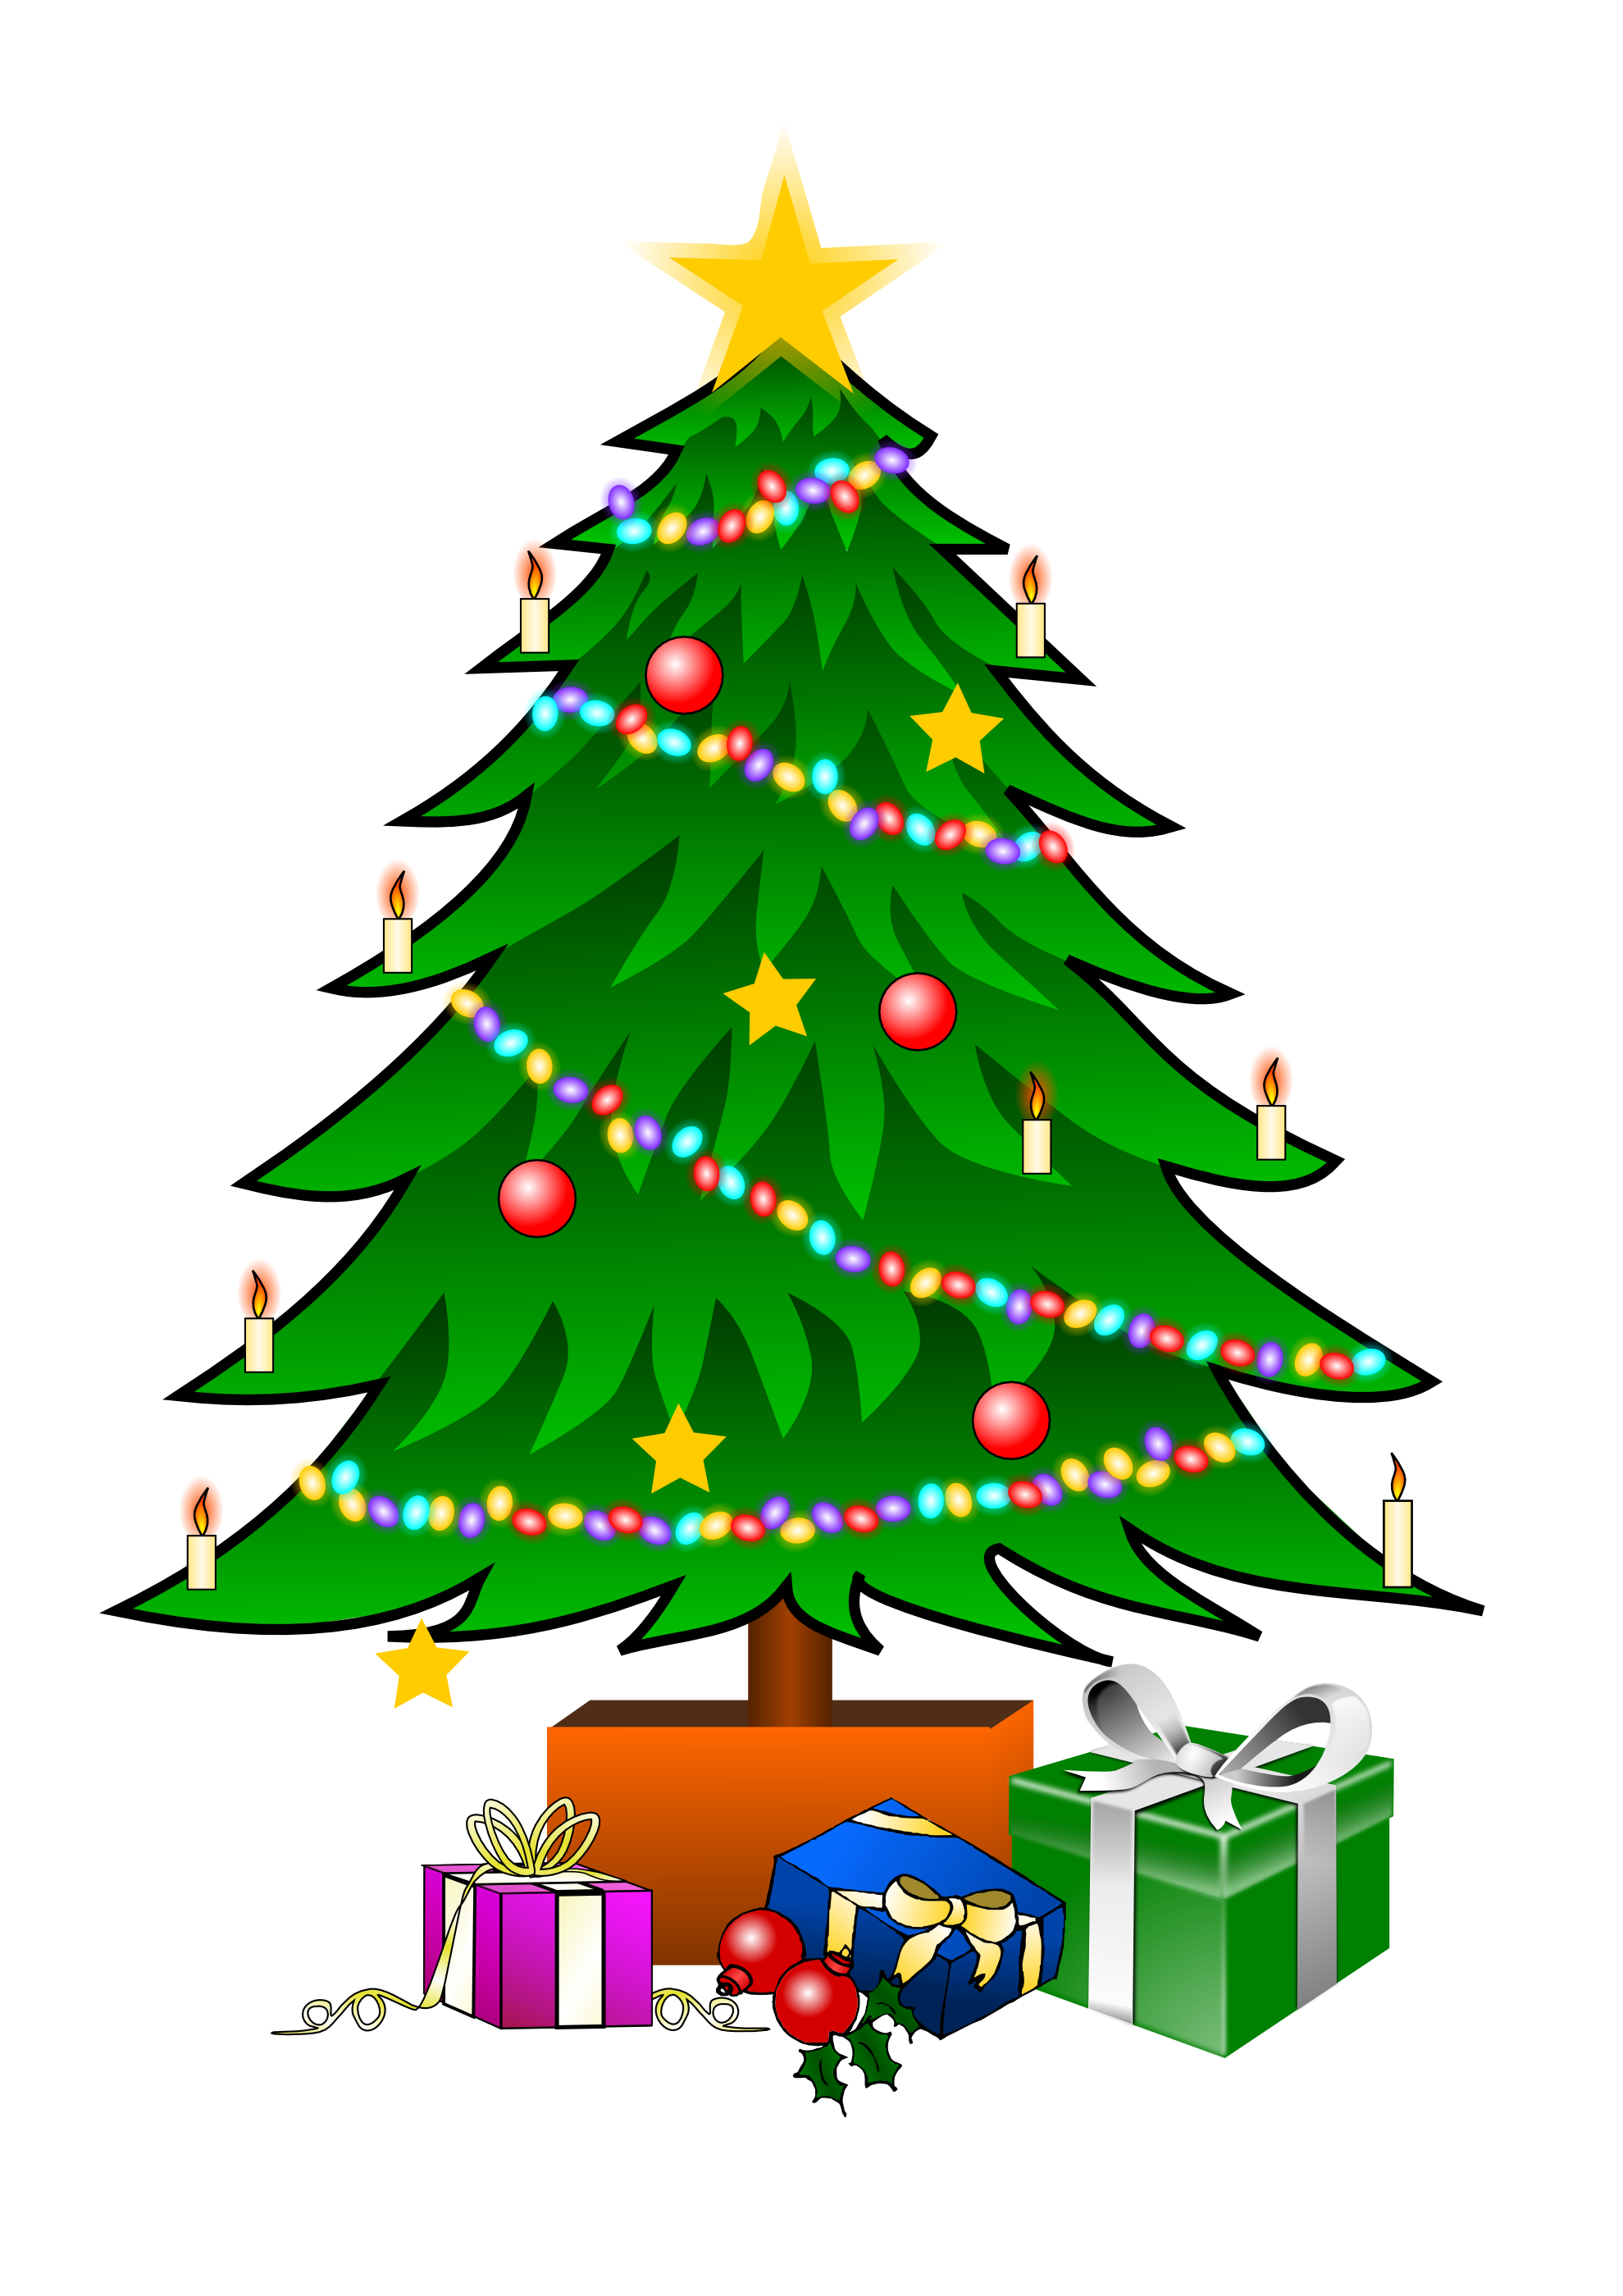 Fancy white christmas ornaments background png. Tree clip art is